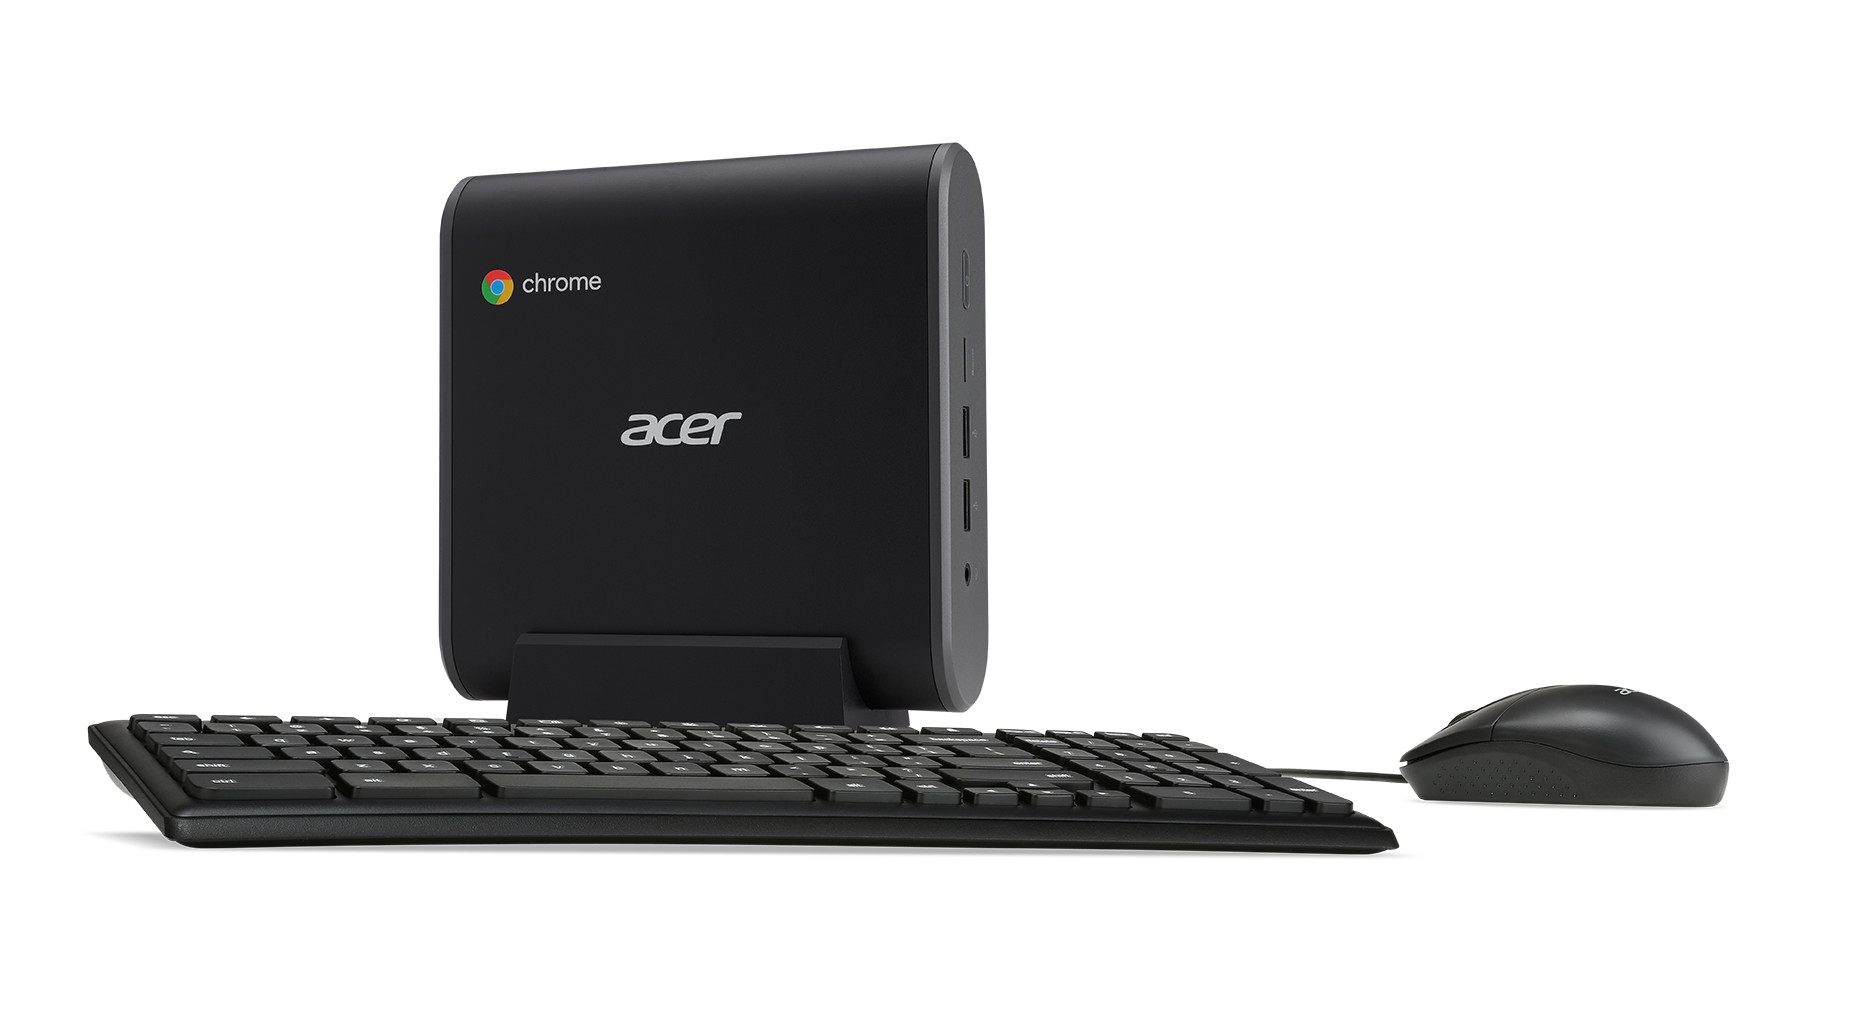 Acer rolls out new Chromebook 11 models, next-gen Chromebox